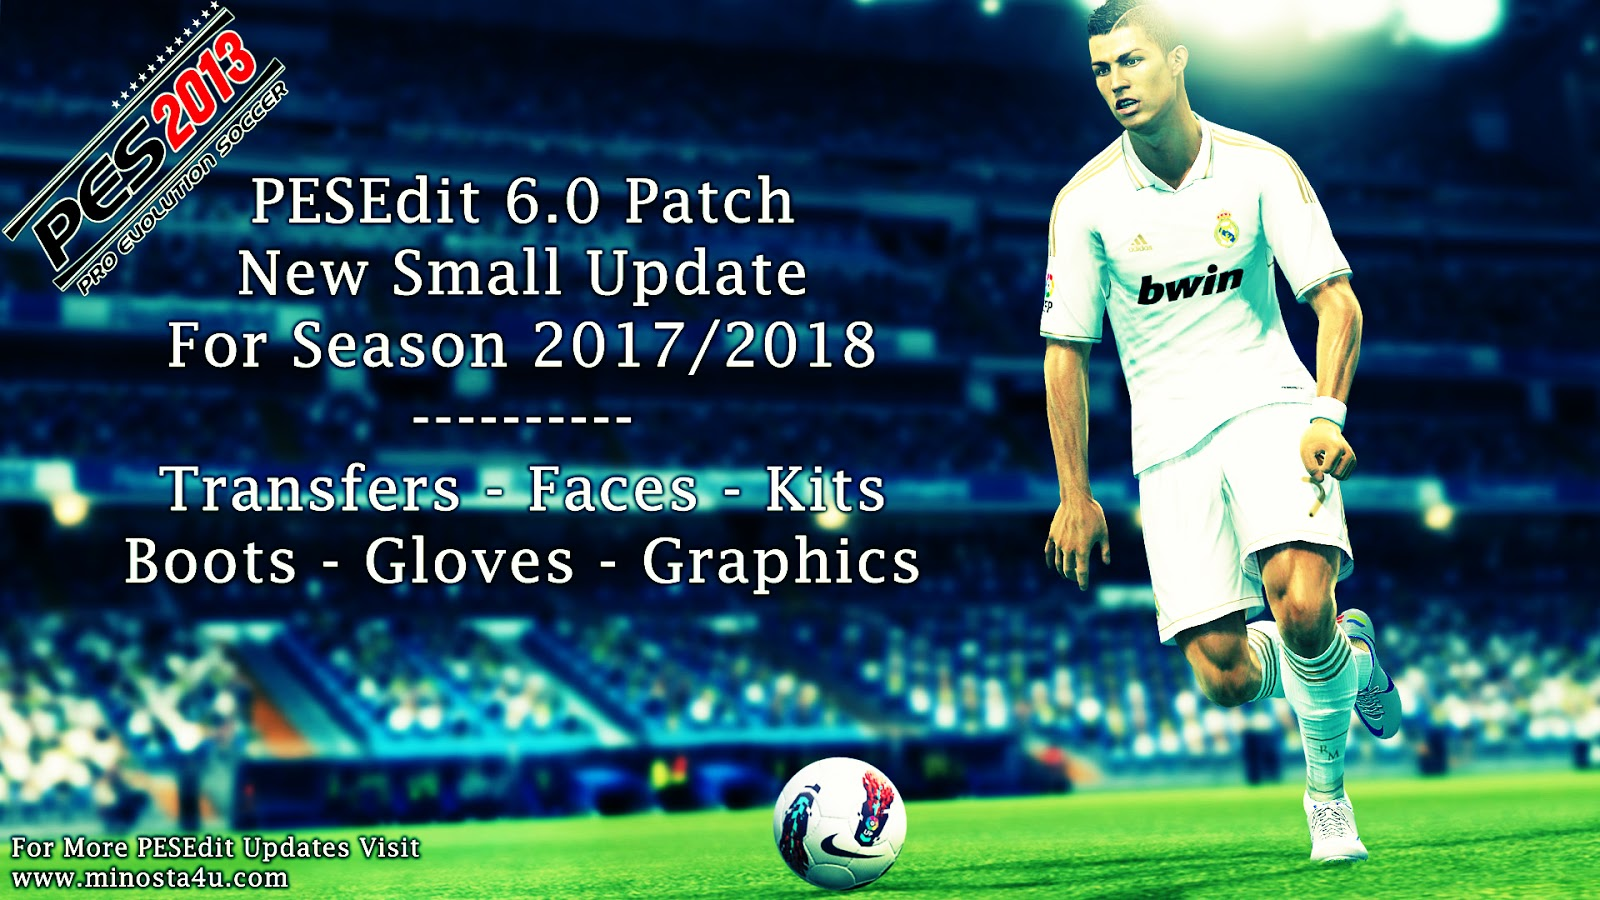 PESEdit.com 2013 Patch 6.0 - PES Patch